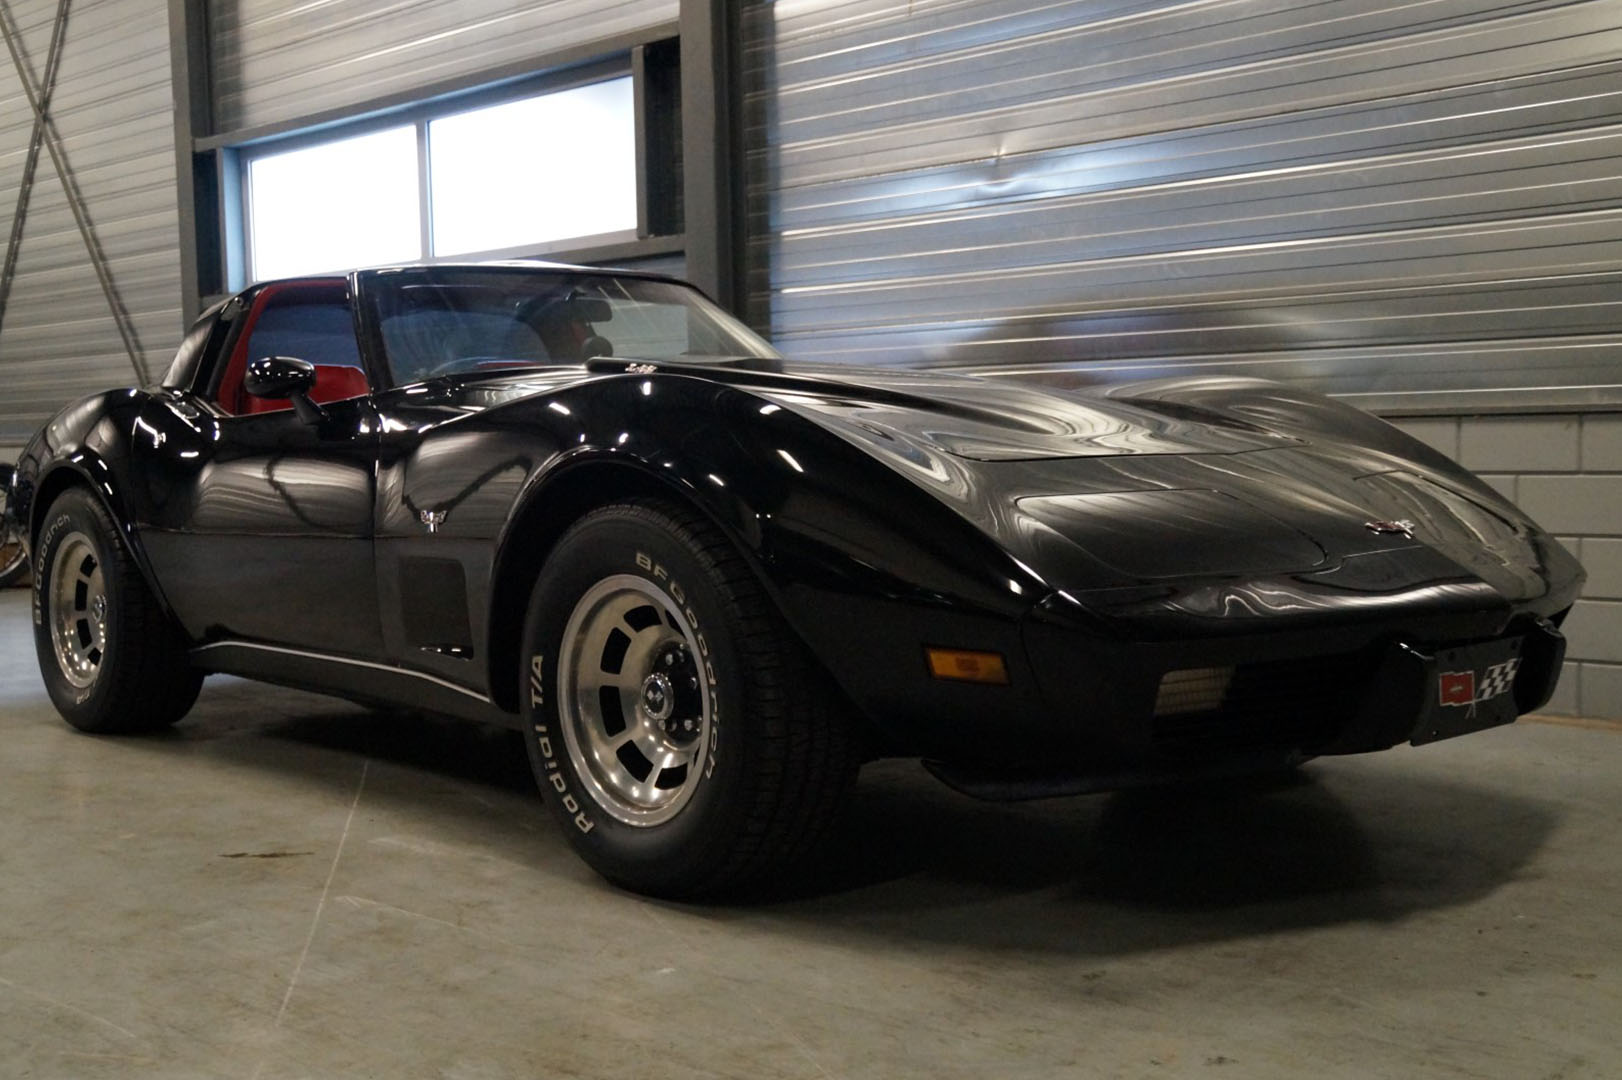 Corvette C3 stingray T-top  kaufen bei Legendary Classics